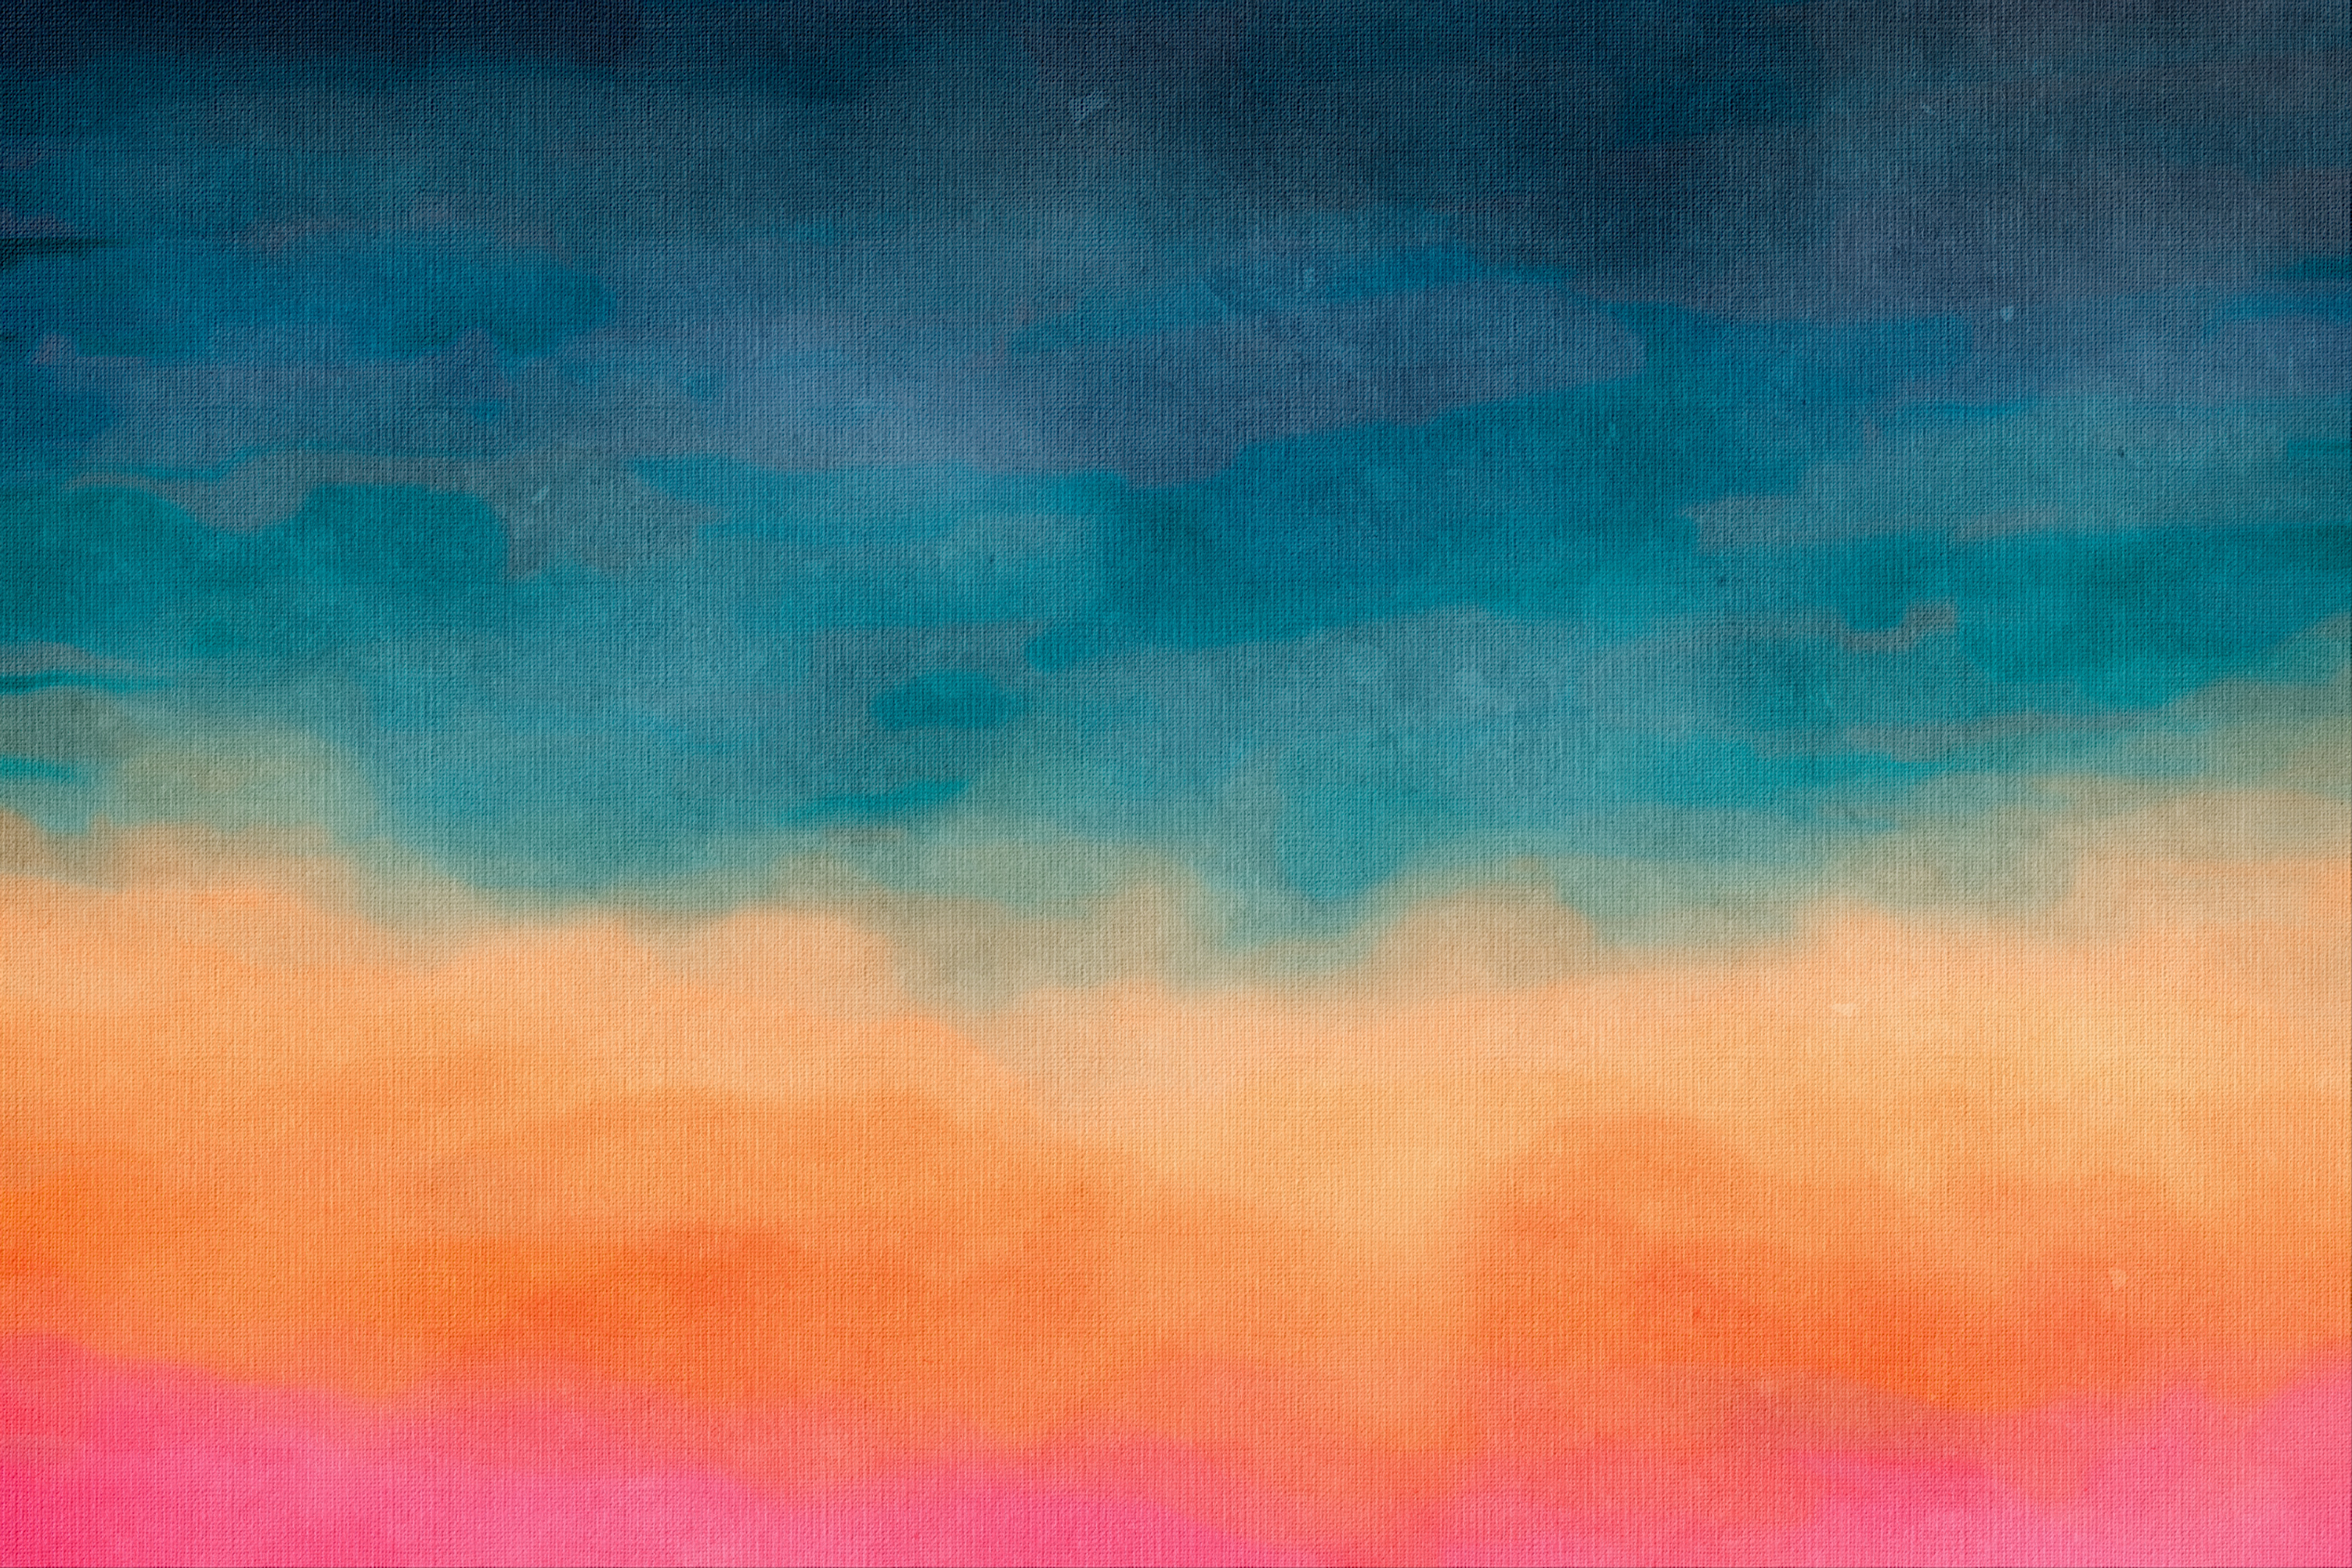 Abstract - Watercolor Textures Pack example image 2